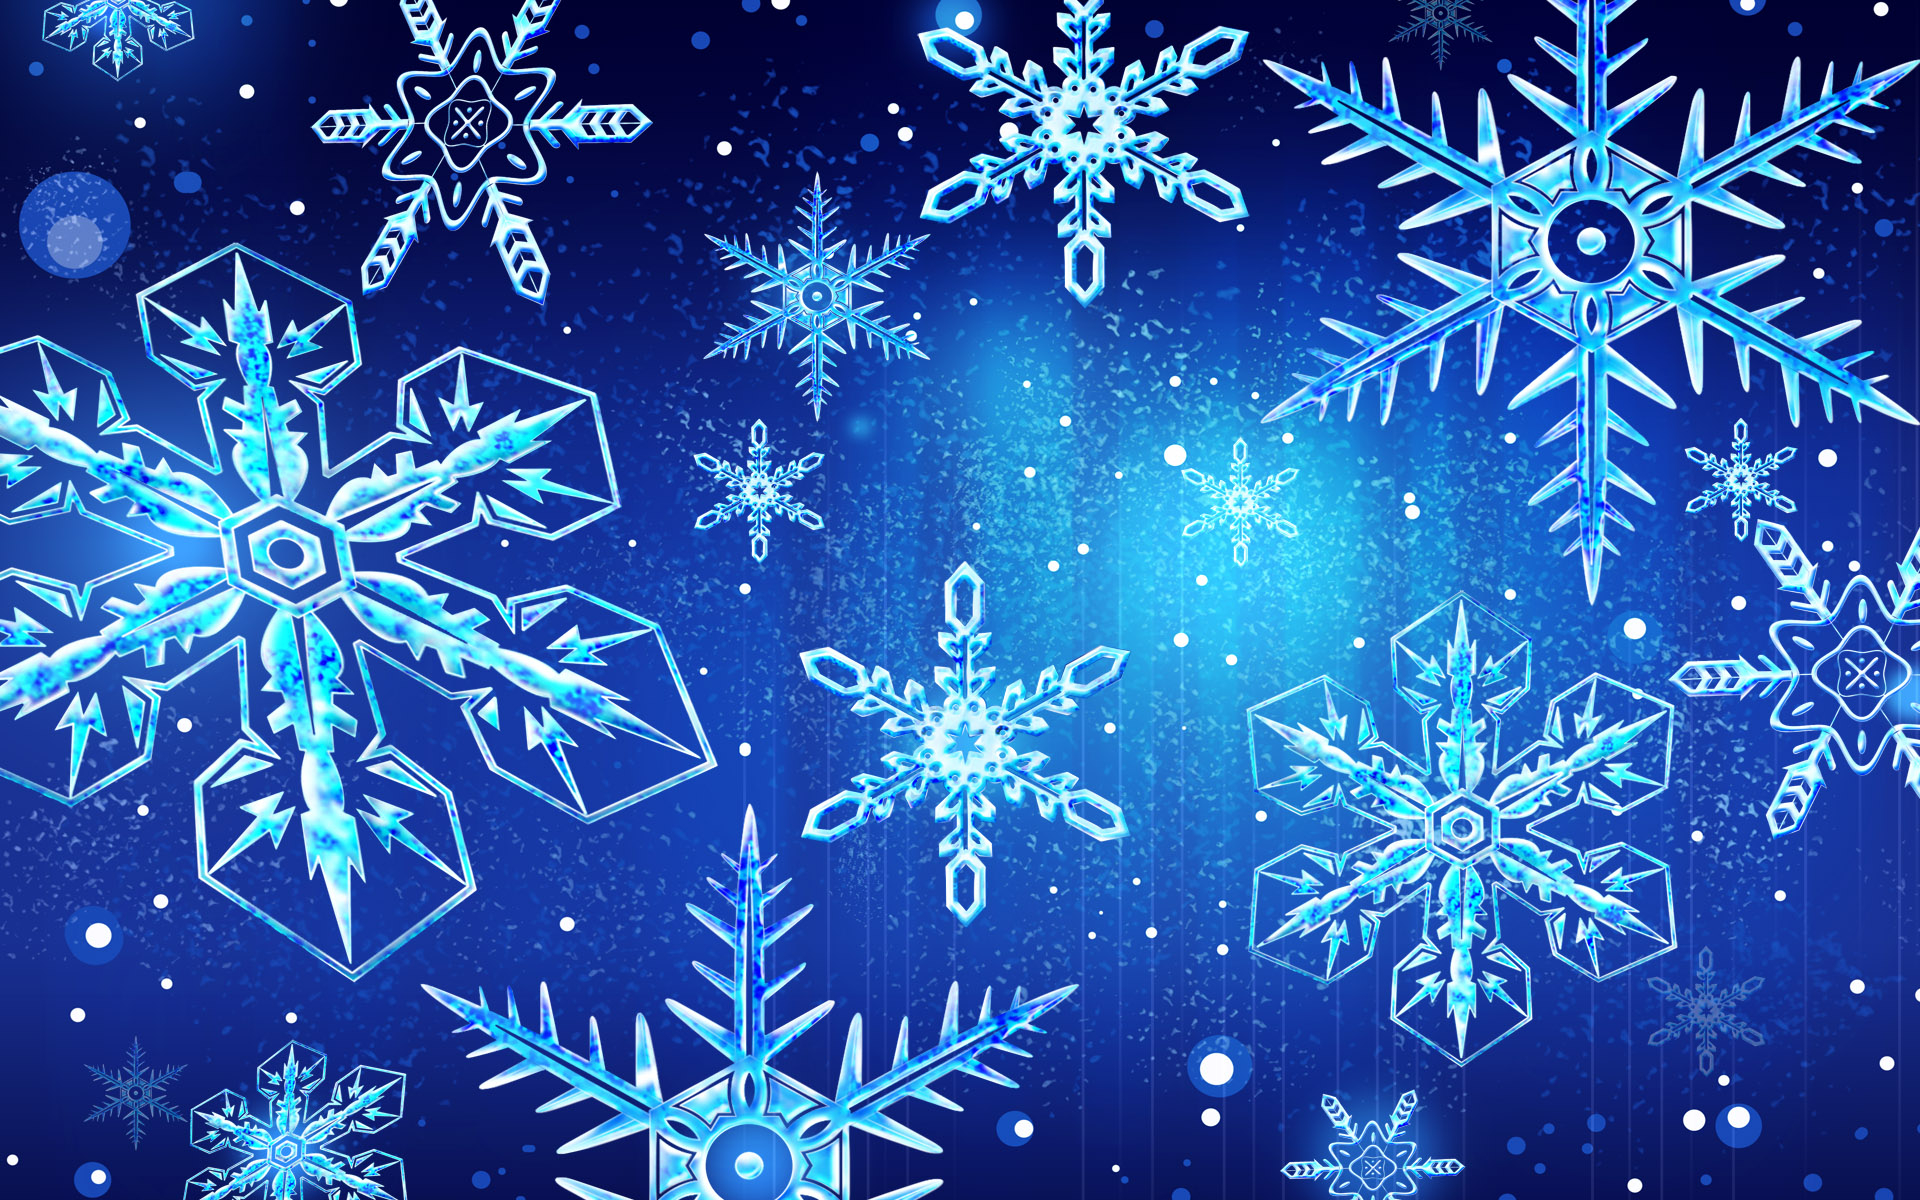 Christmas backgrounds wallpaper 25543 for Sfondi natalizi 1920x1080